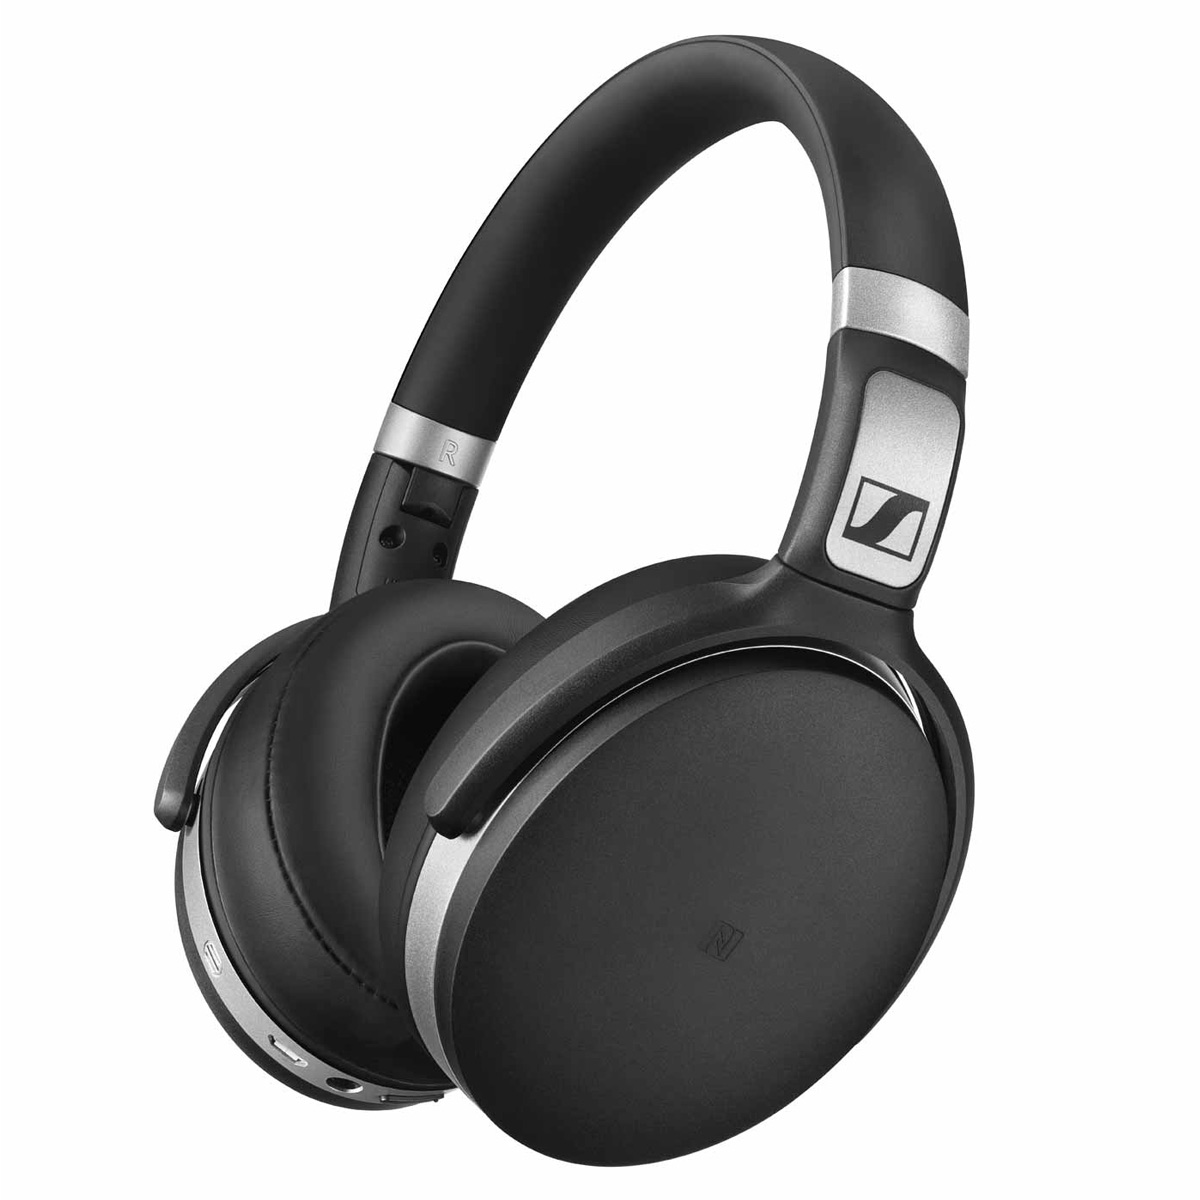 Sennheiser HD 4.50 Wireless Over-Ear Bluetooth Headphones with Noise Cancellation (Black)